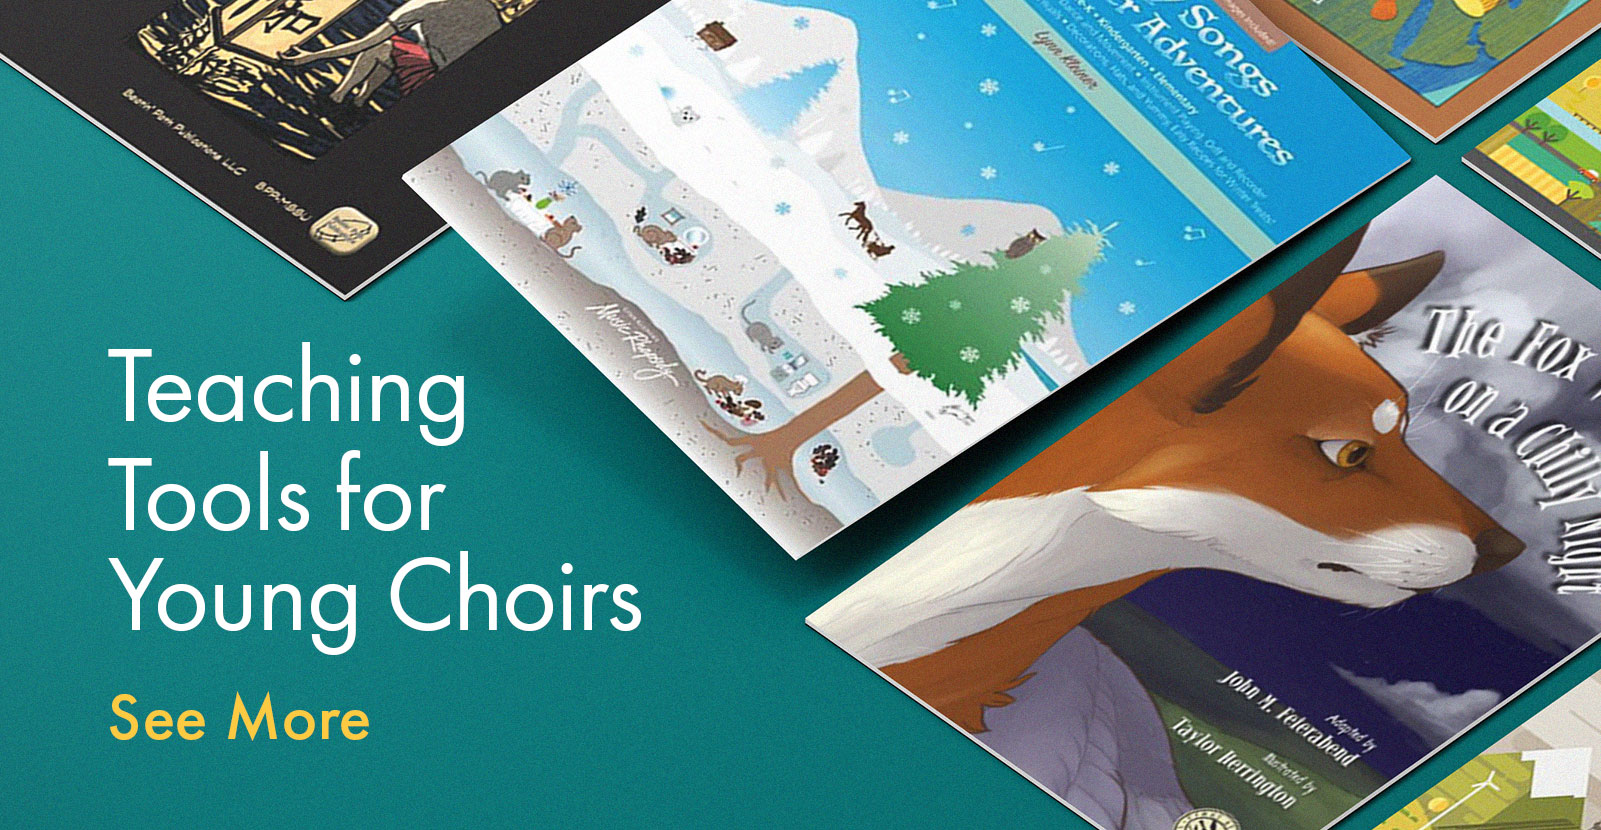 Shop song collections for young choirs.